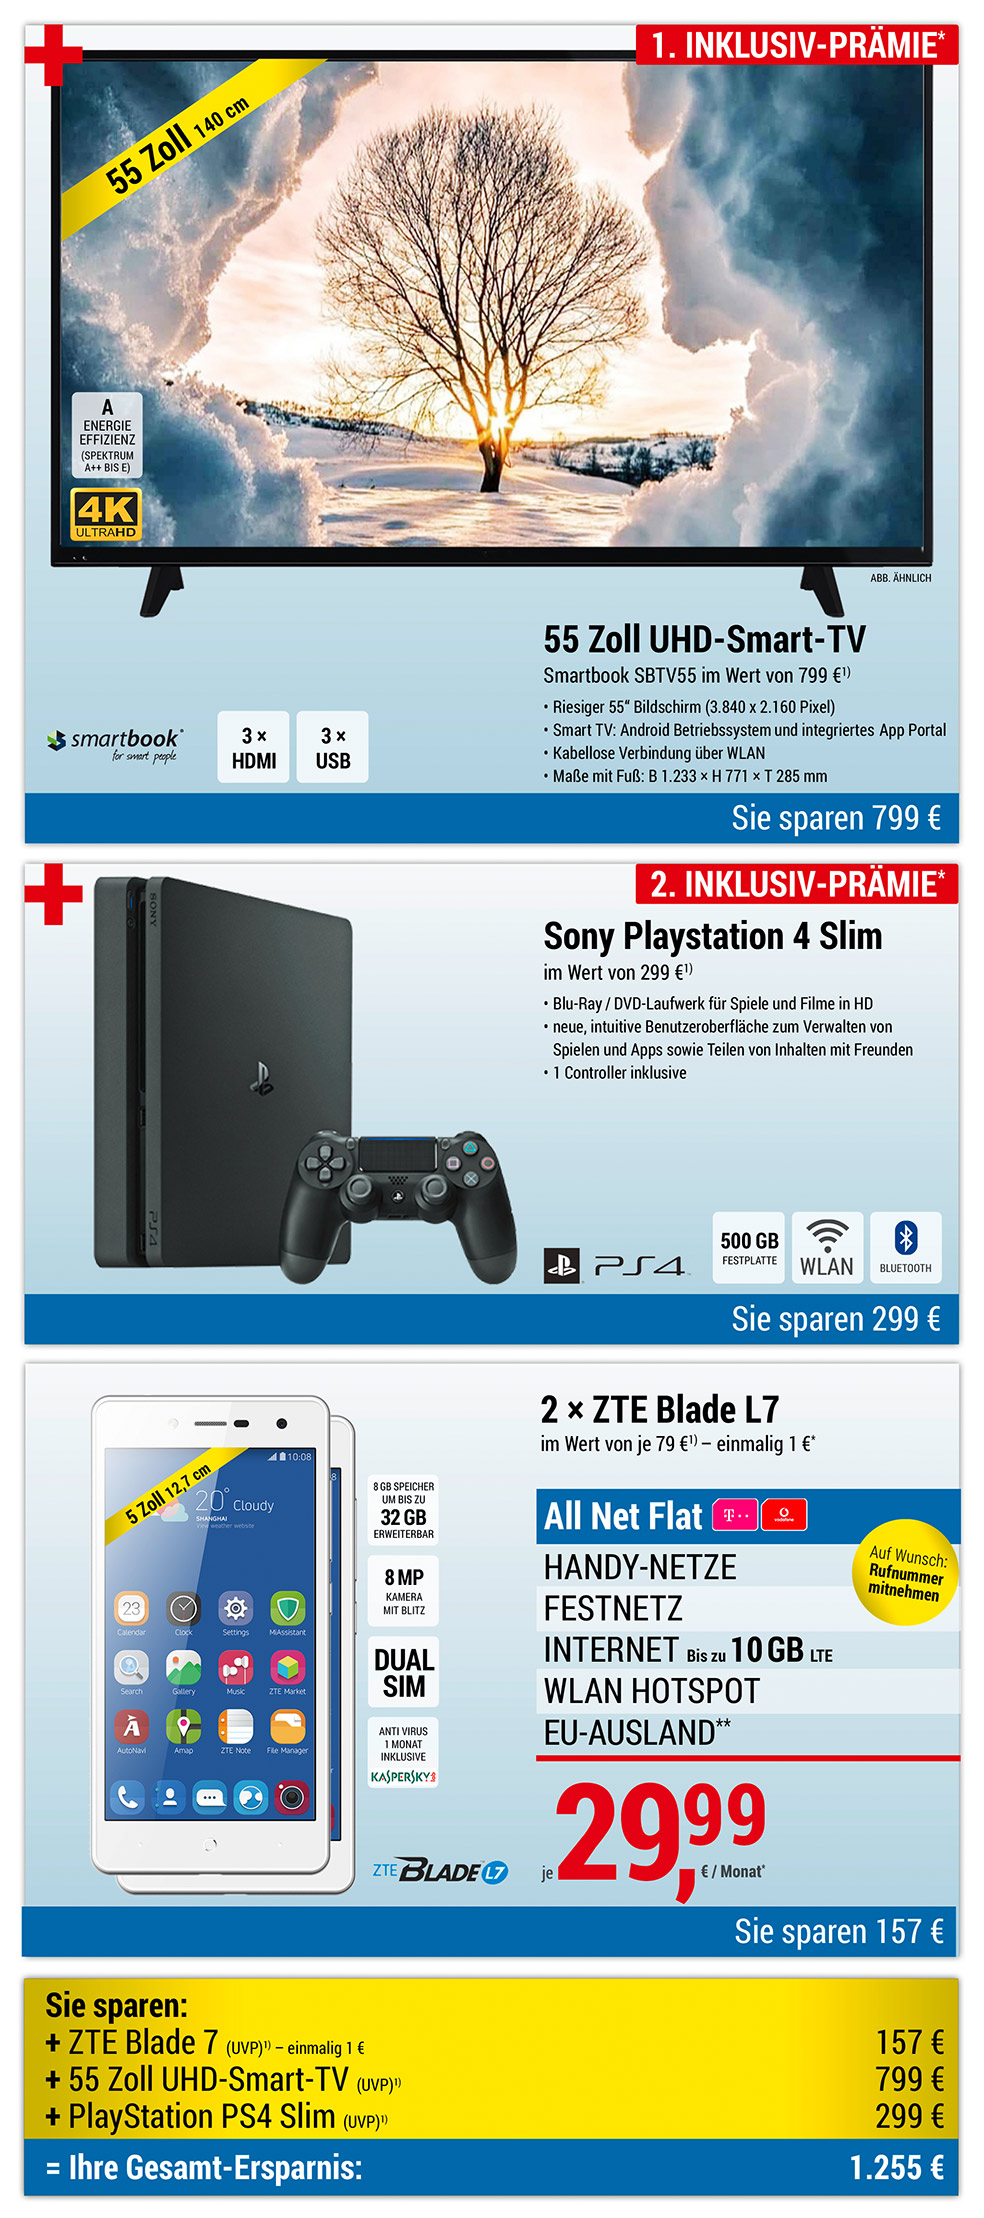 55 Zoll UHD XXL Smart-TV + PlayStation PS4 Slim INKLUSIVE + 2 × ZTE Blade L7